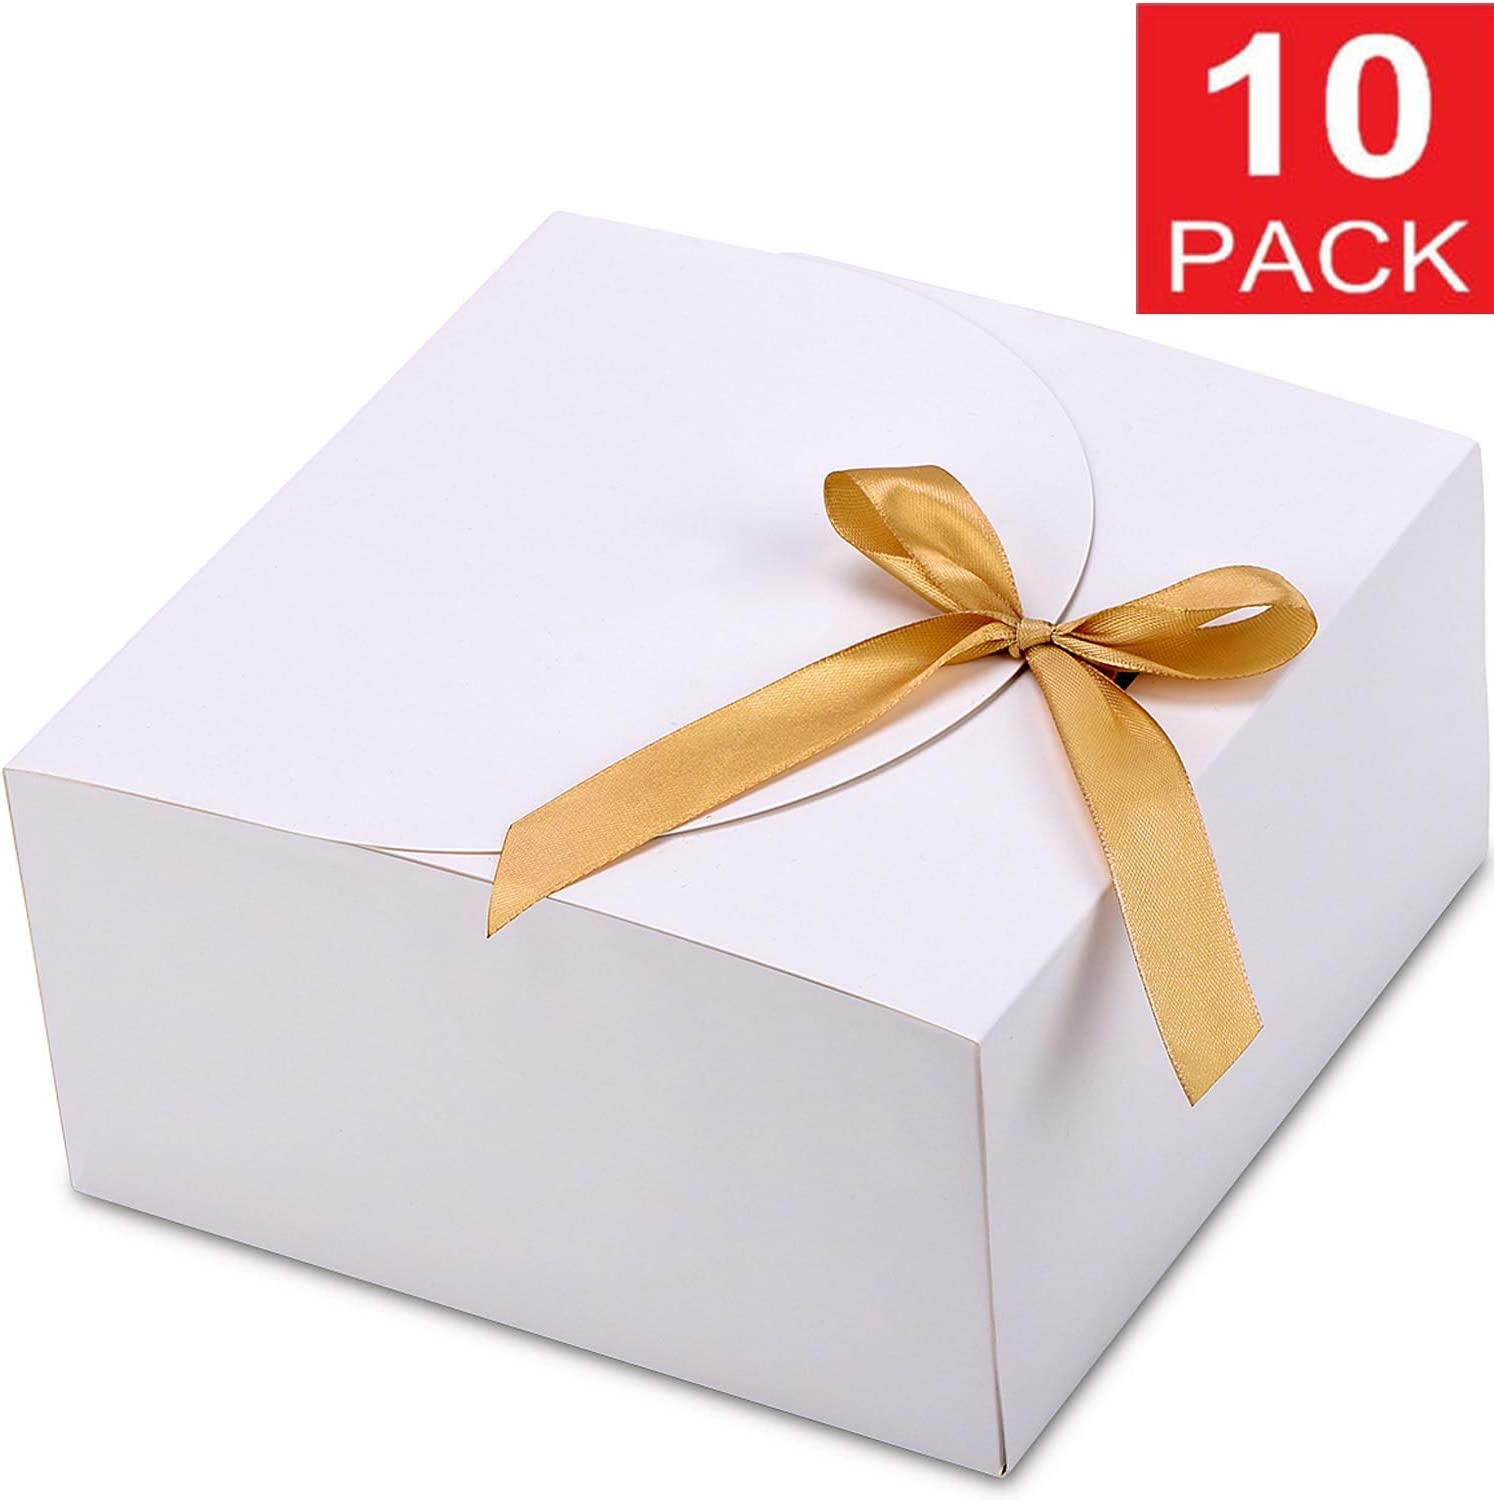 Gift Boxes with Lids, WantGor 10 Pack 8x8x4inch Kraft Paper Gift Wrap Boxes for Gifts, Bridesmaids, Chocolate, Cupcake, Crafting (White)